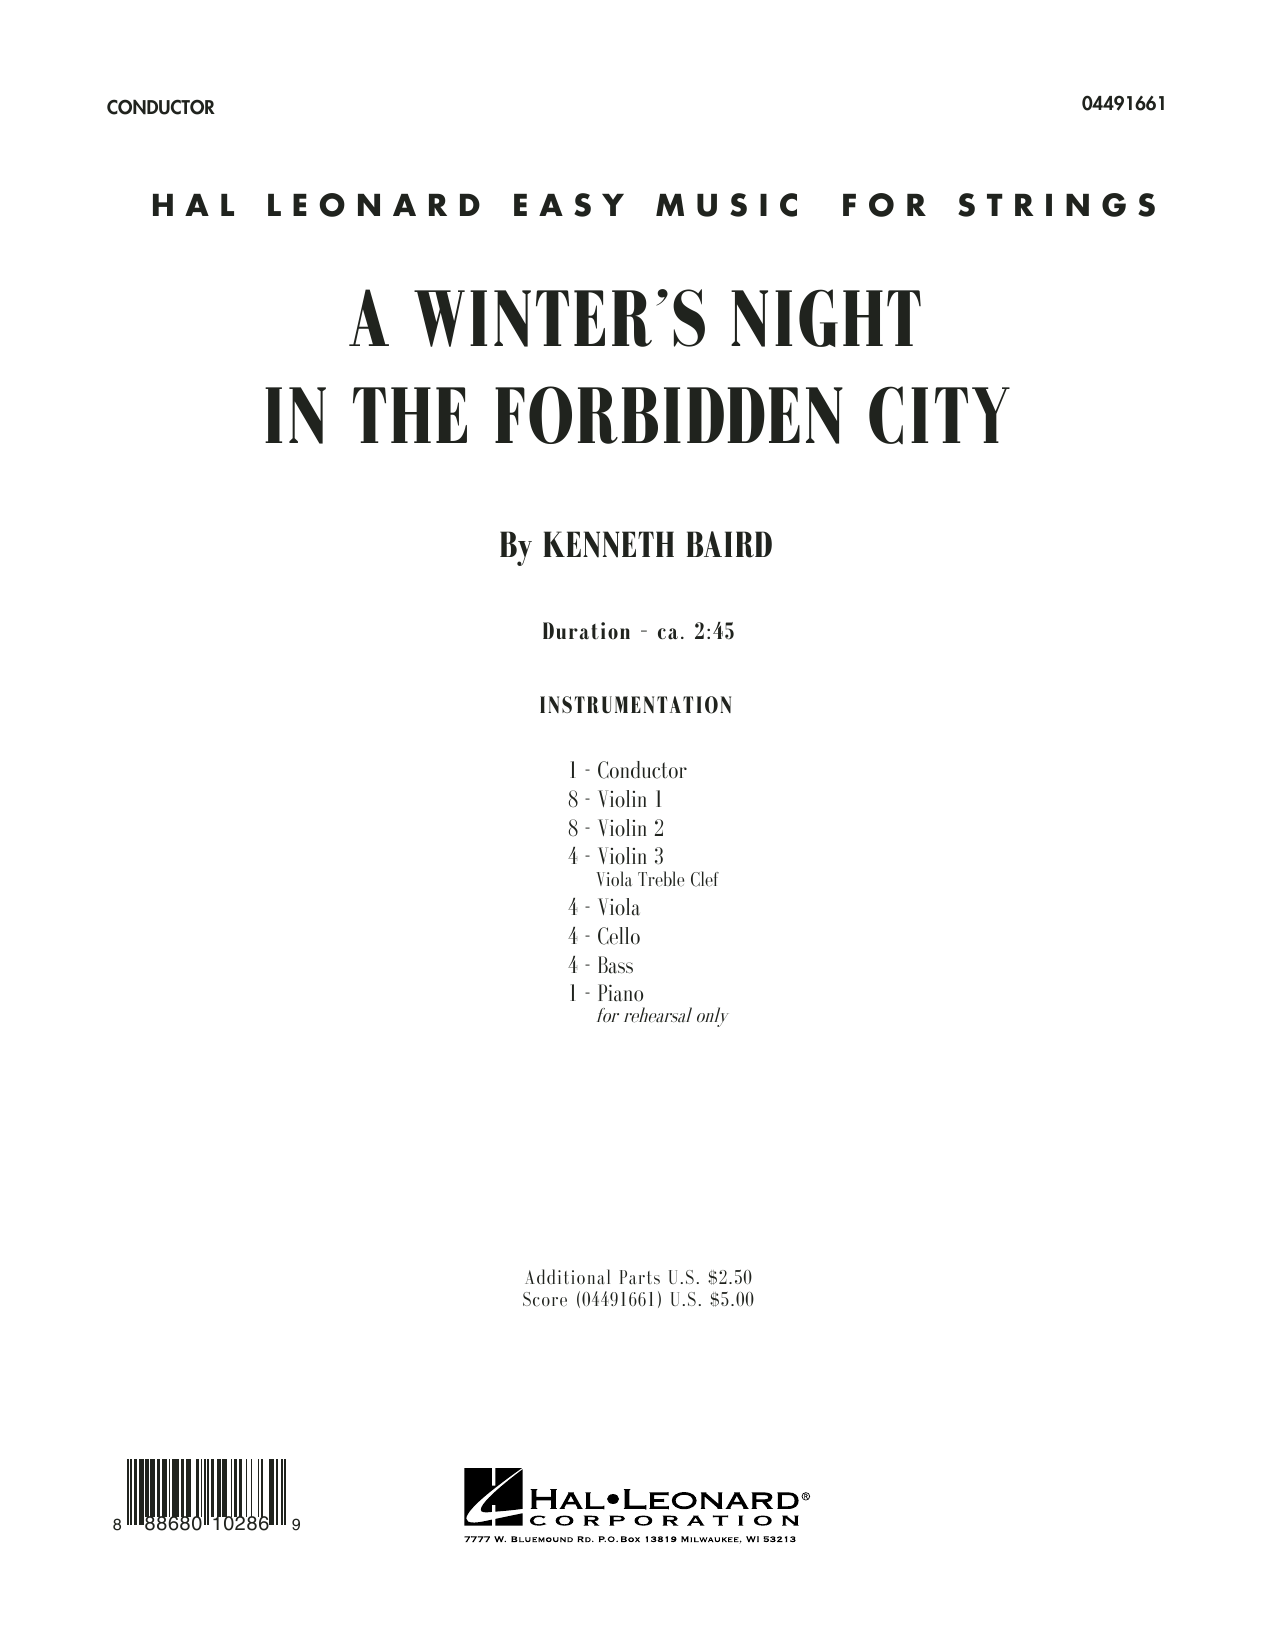 Kenneth Baird A Winter's Night in the Forbidden City - Conductor Score (Full Score) sheet music notes and chords. Download Printable PDF.